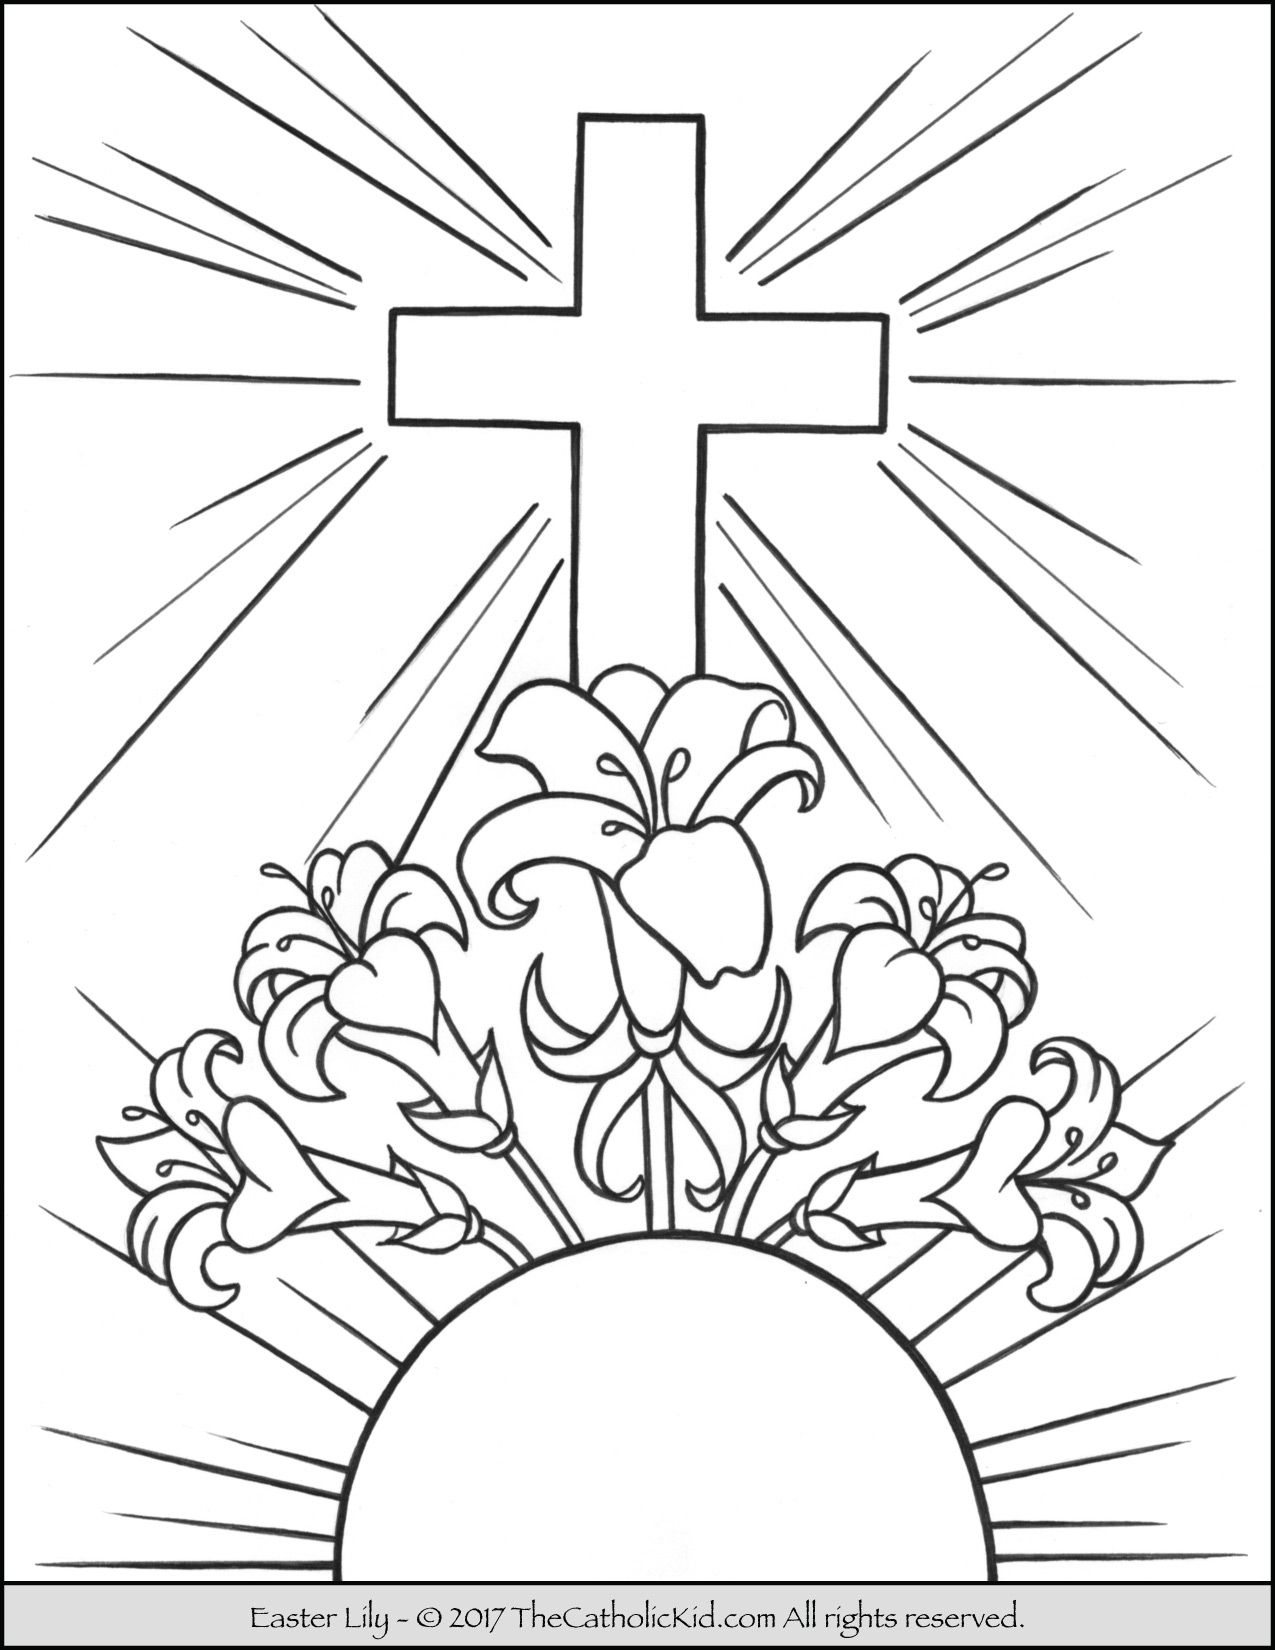 Easter Lily Coloring Page Easter coloring pages, Rose